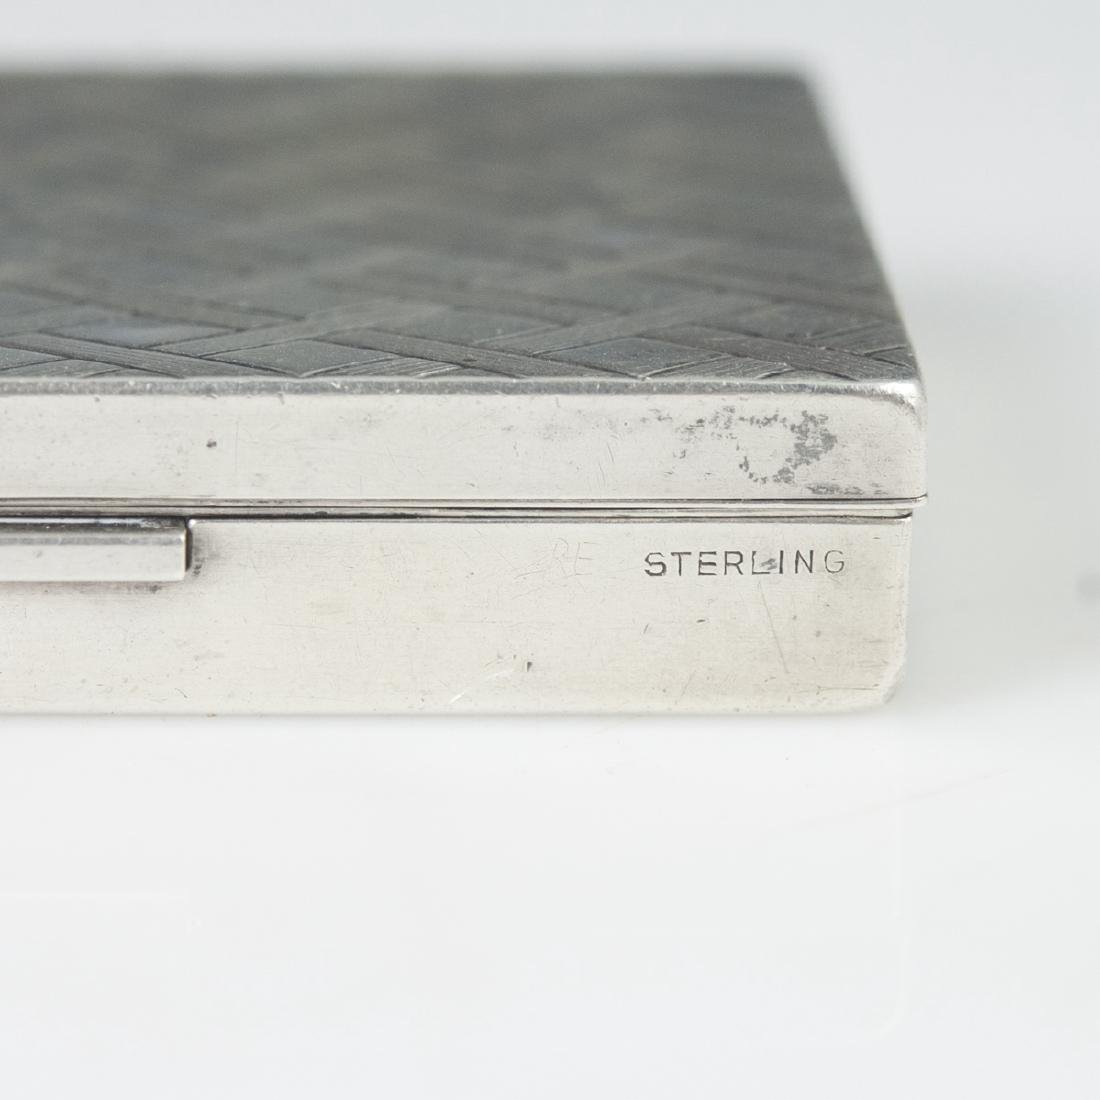 Antique Sterling Cigarette Box - 2